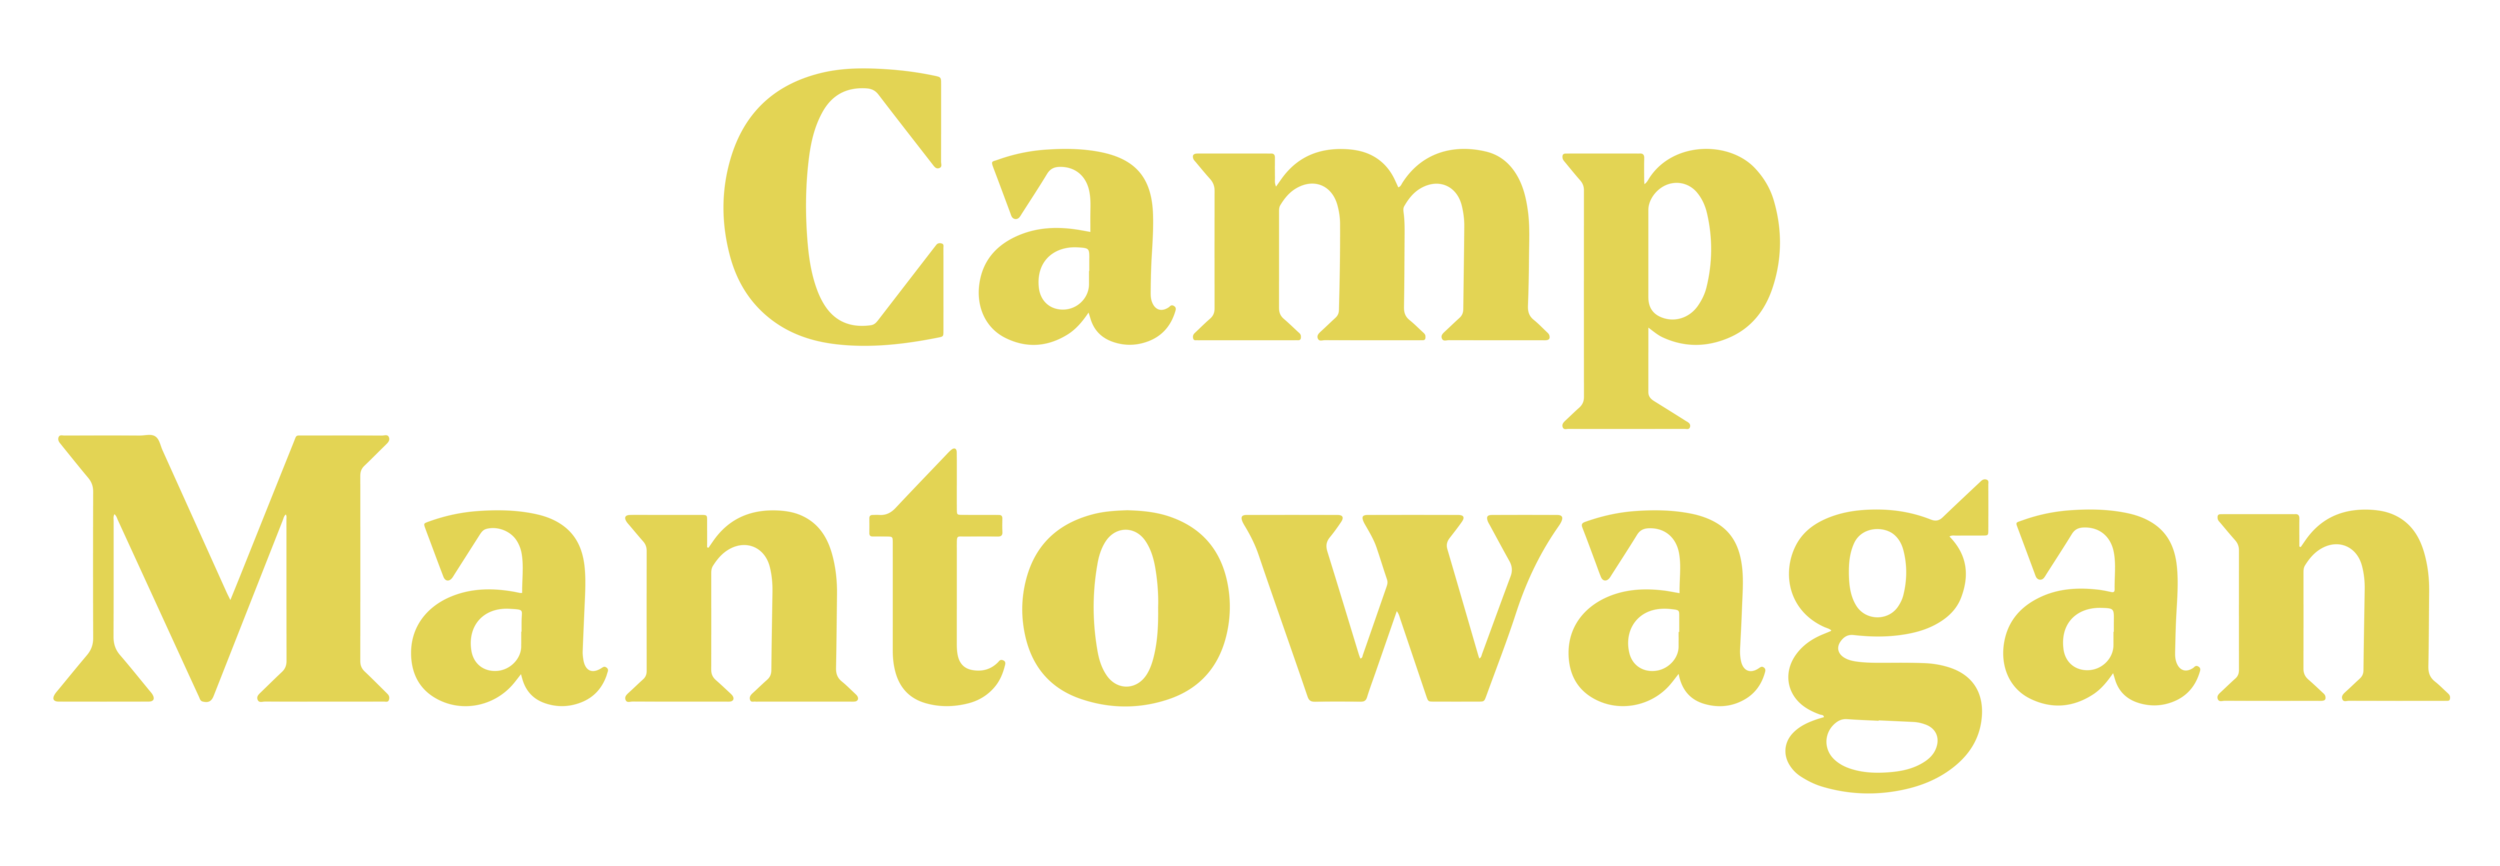 CAMP_MANTOWAGAN.png